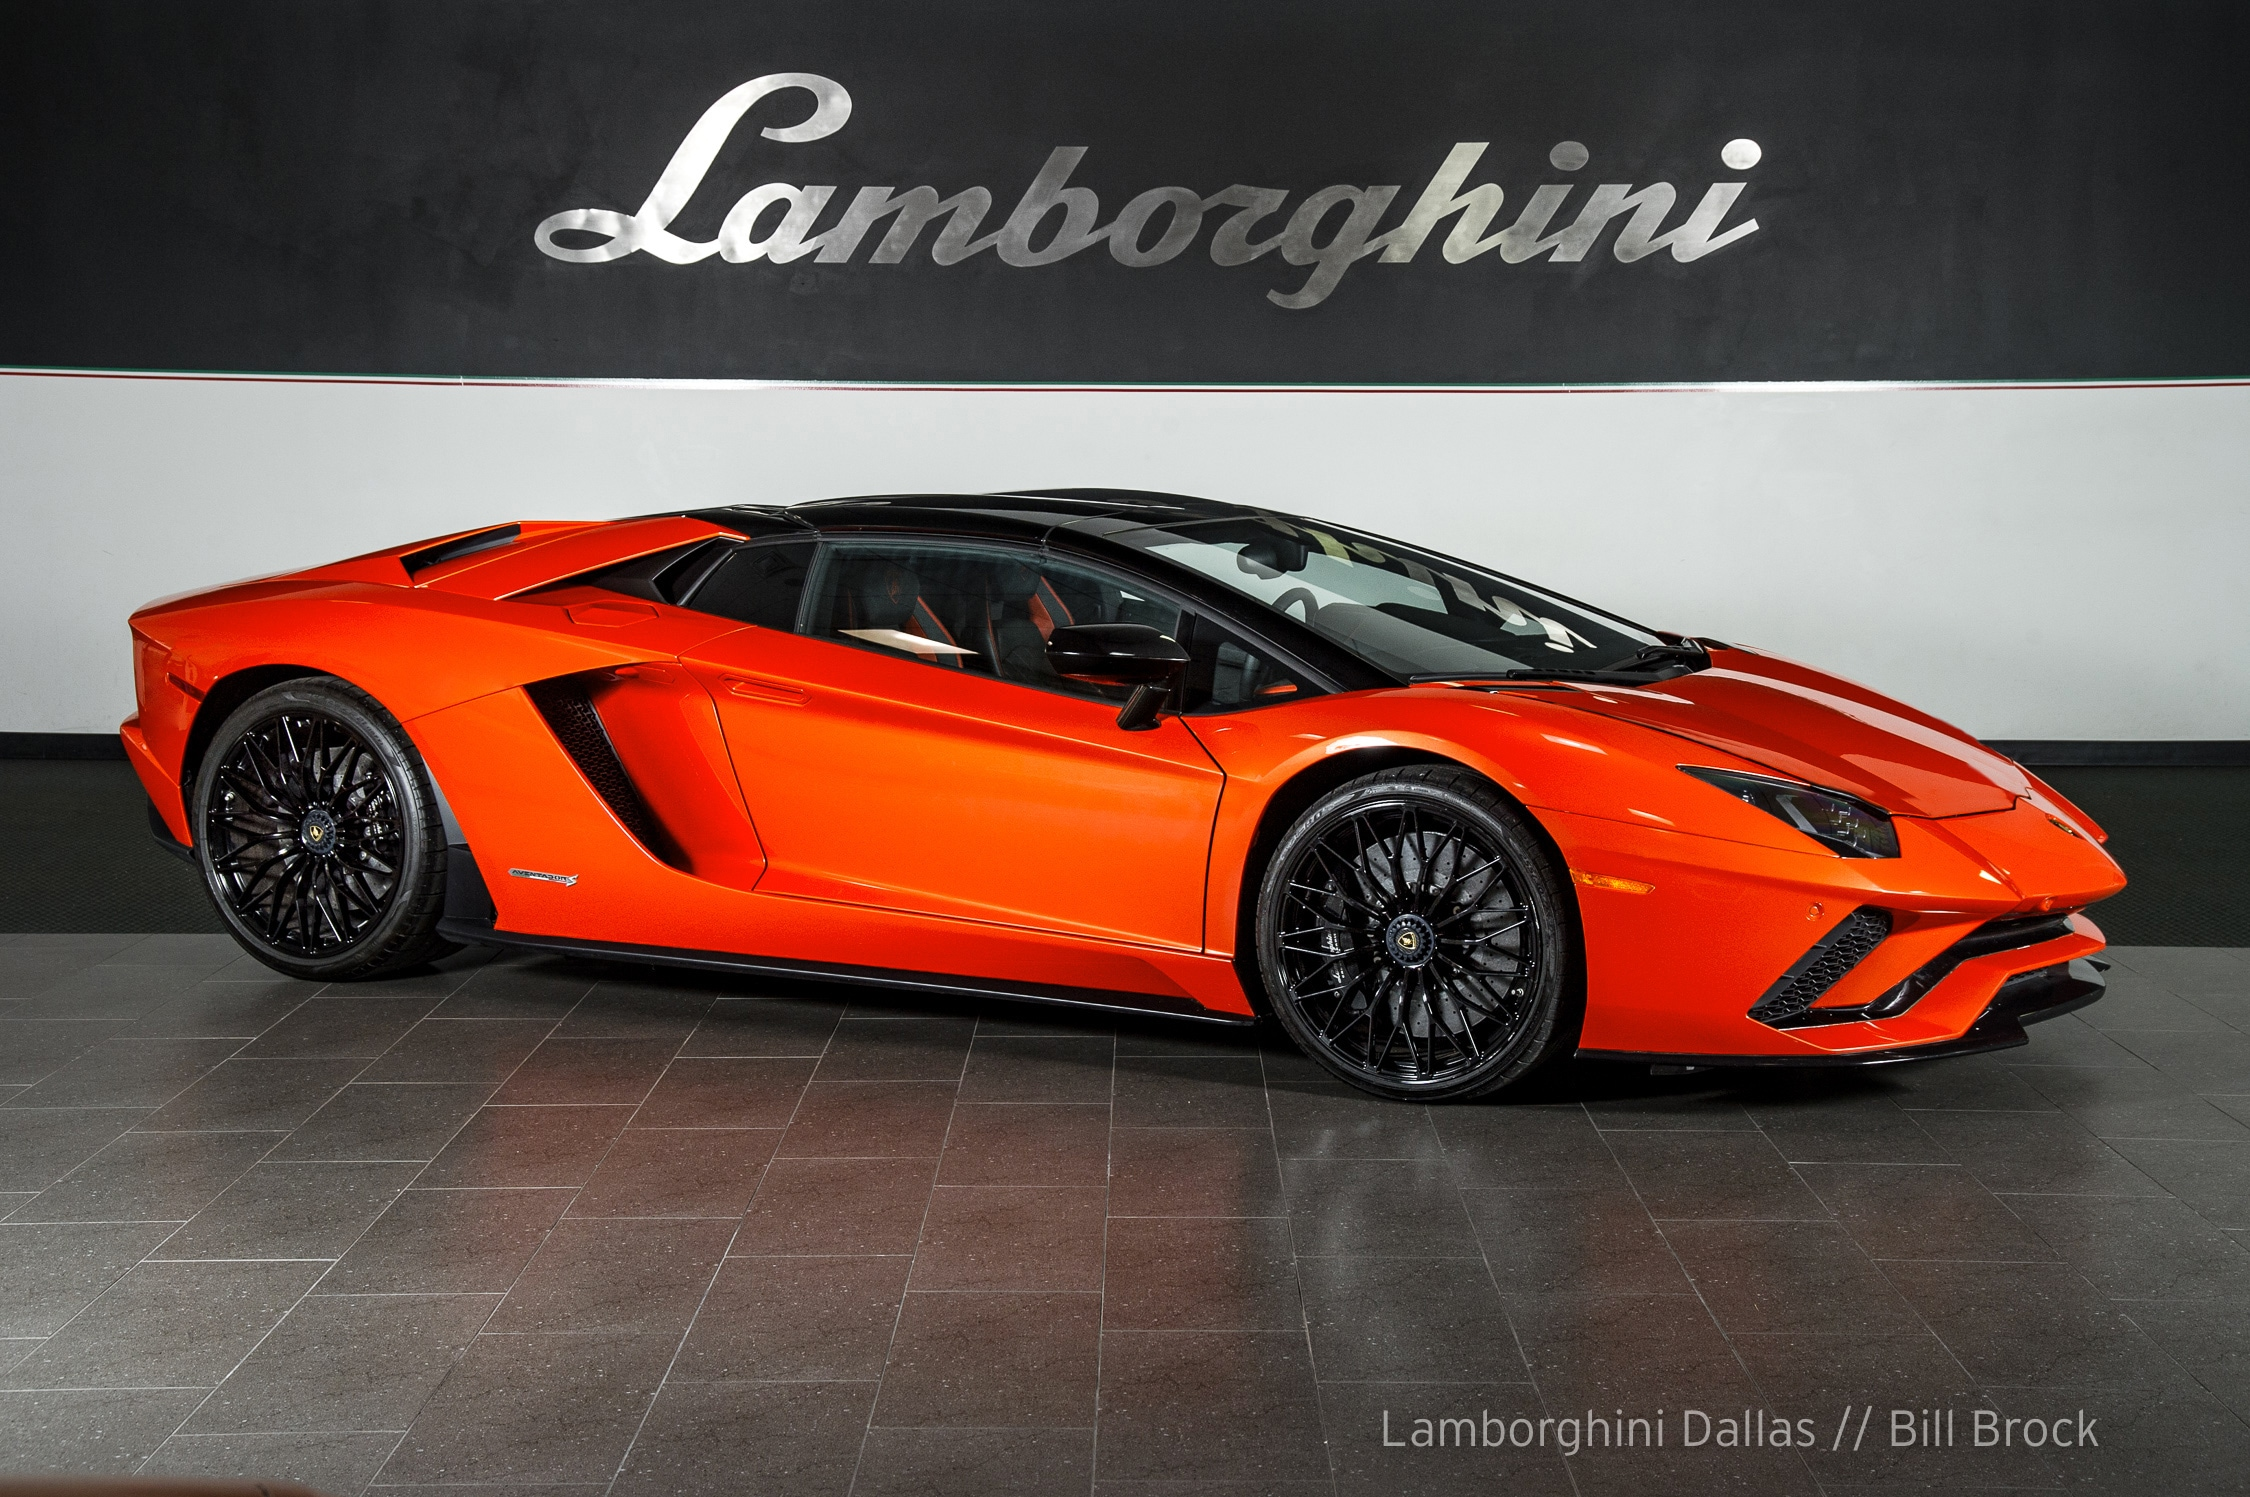 Used 2018 Lamborghini Aventador S For Sale Richardson Tx Stock 18l0111 Vin Zhwuv4zd4jla07396